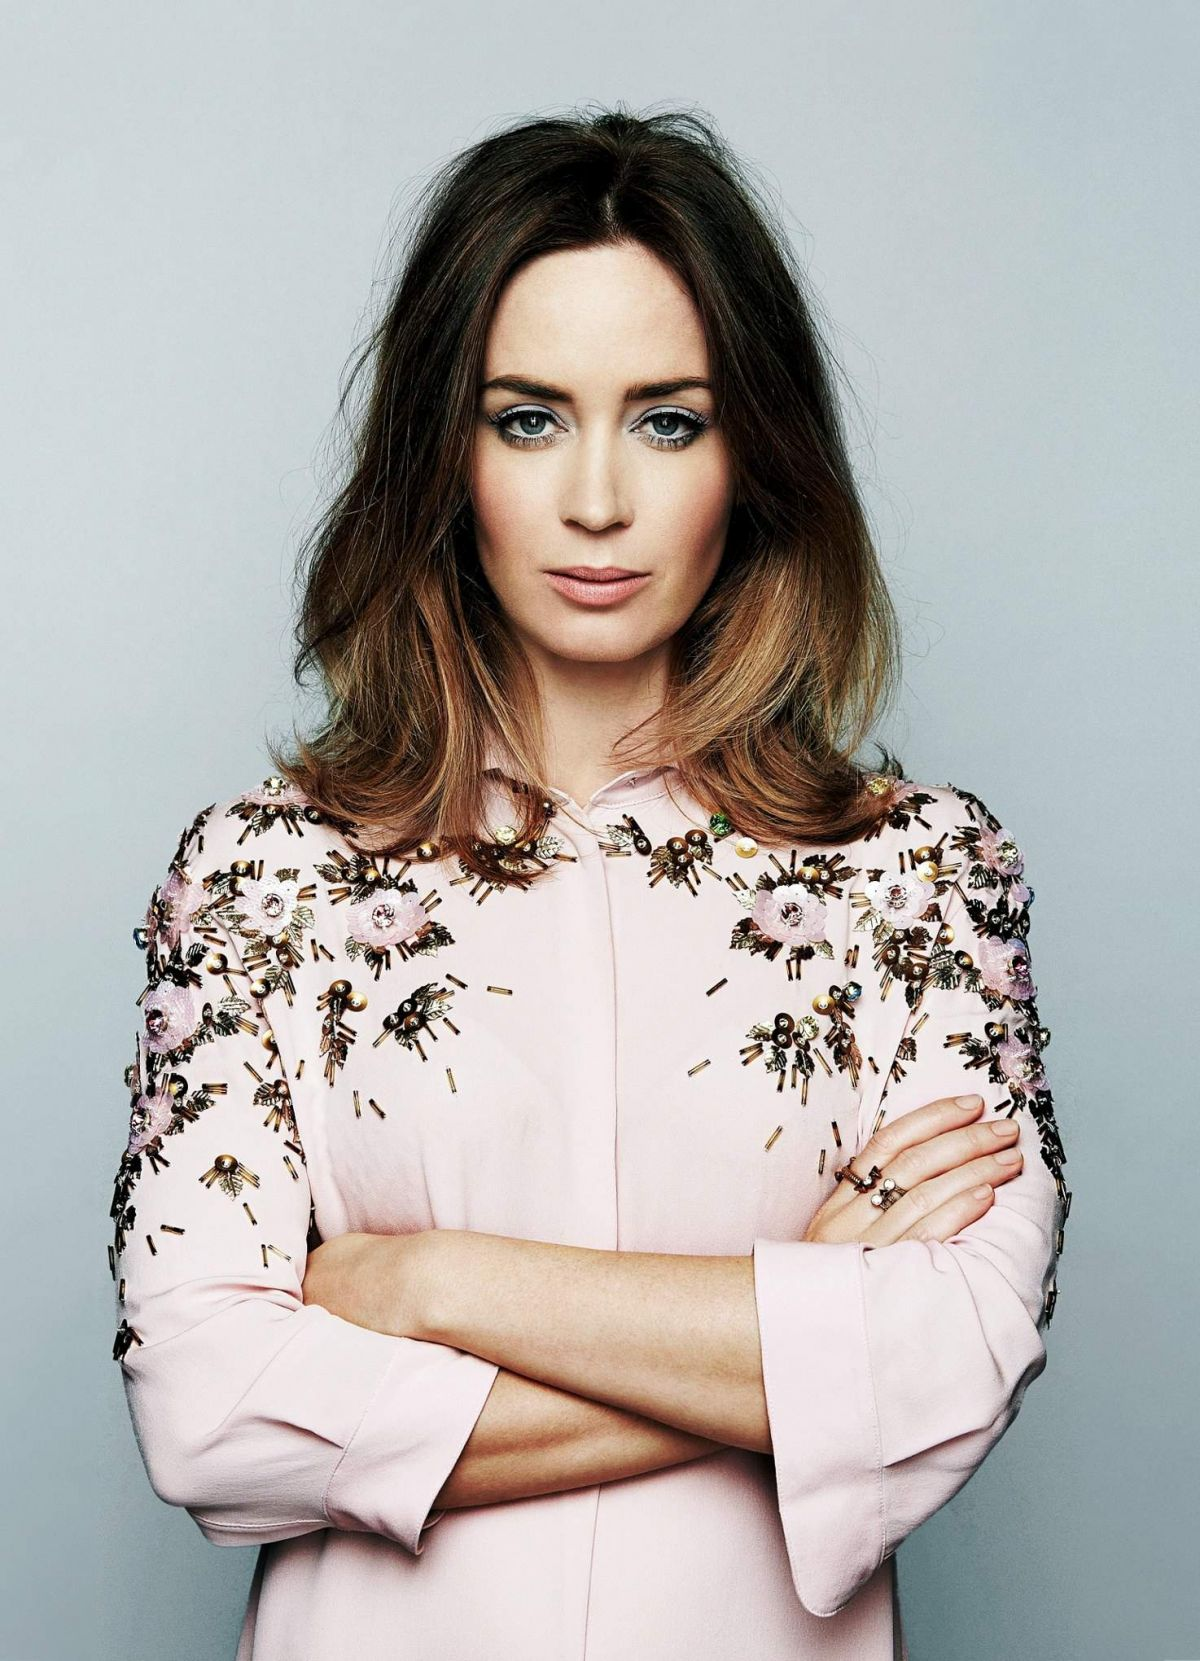 EMILY BLUNT - The Guardian Magtazine Photoshoot by Danielle Levitt ... Emily Blunt